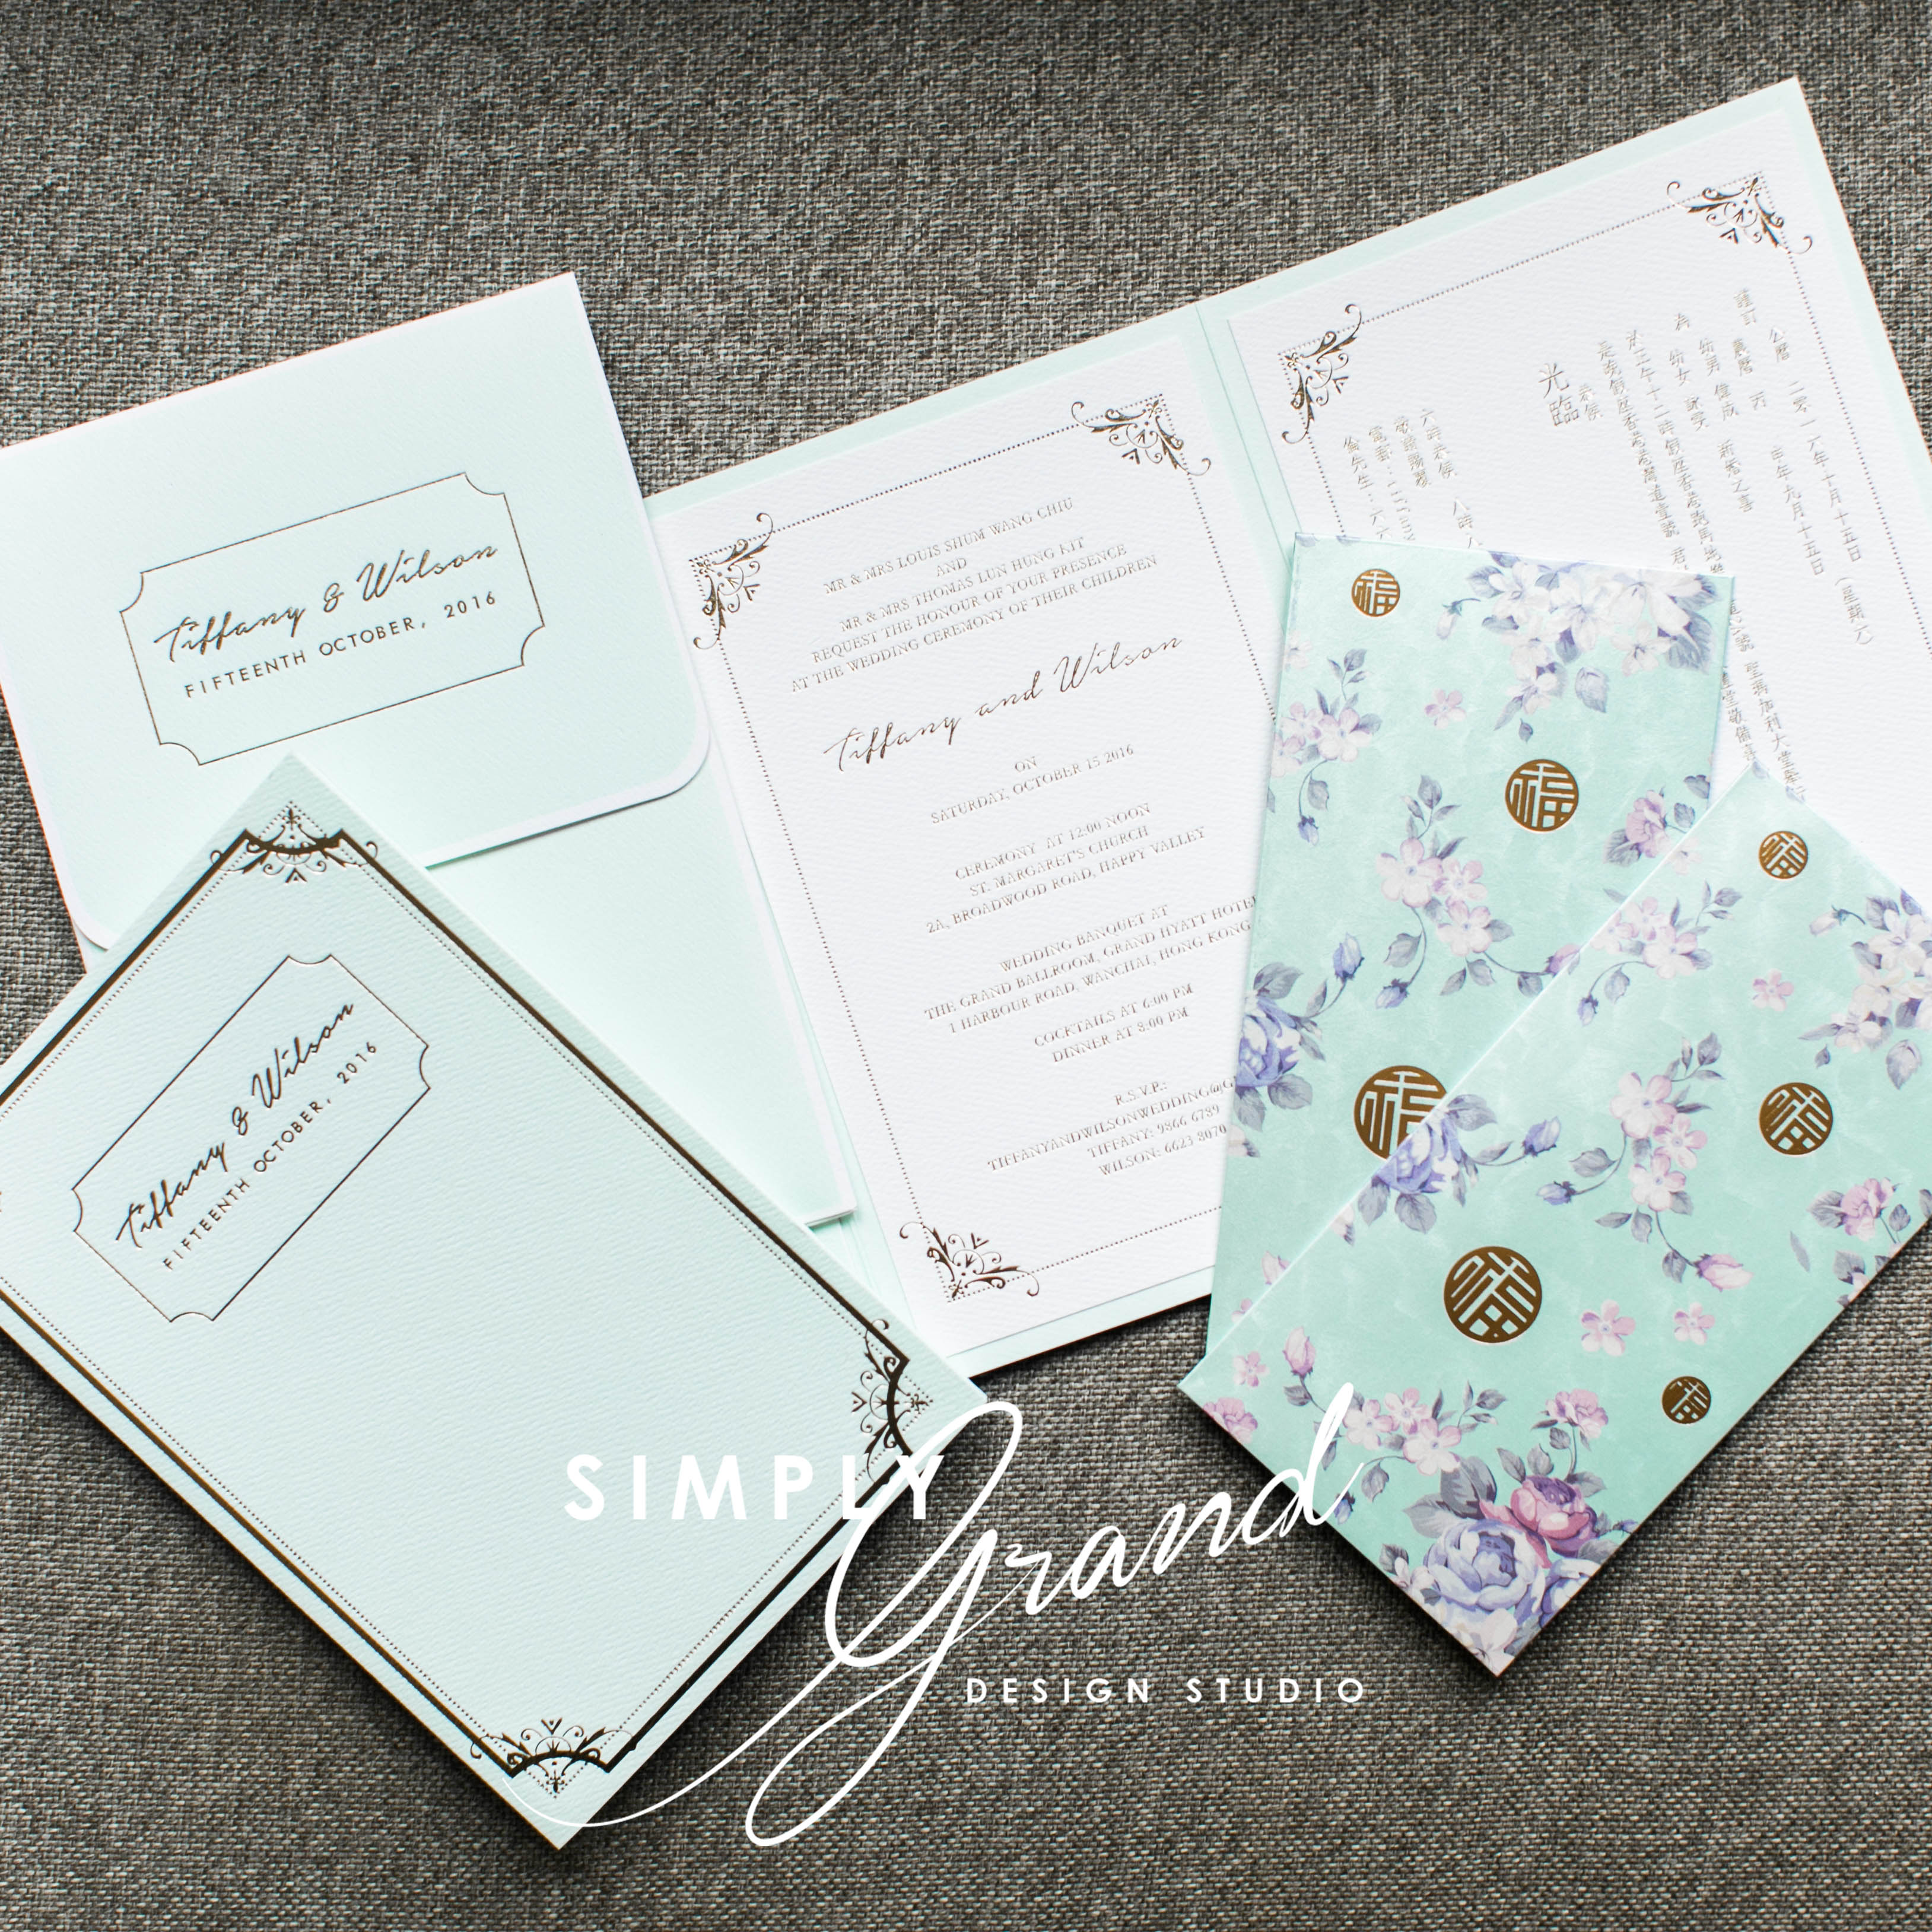 Simply_Grand_Production_Stationery_Invitation_Card_6_2